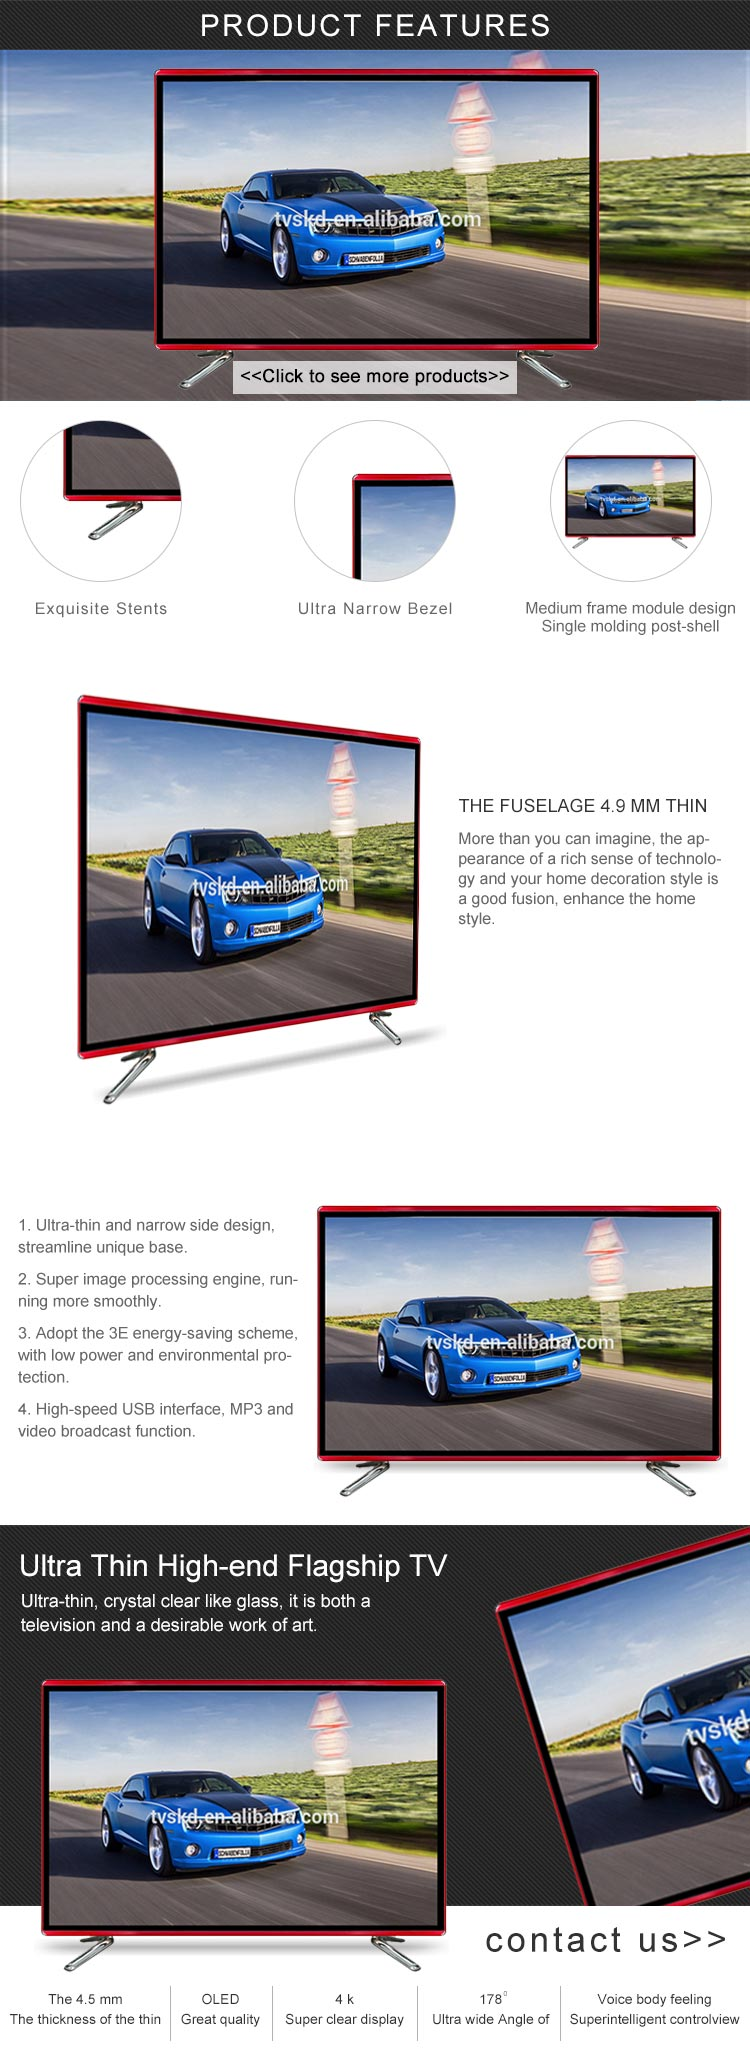 China Television Company Led tv Price In India Big Hd Smart Tv 55 Inch